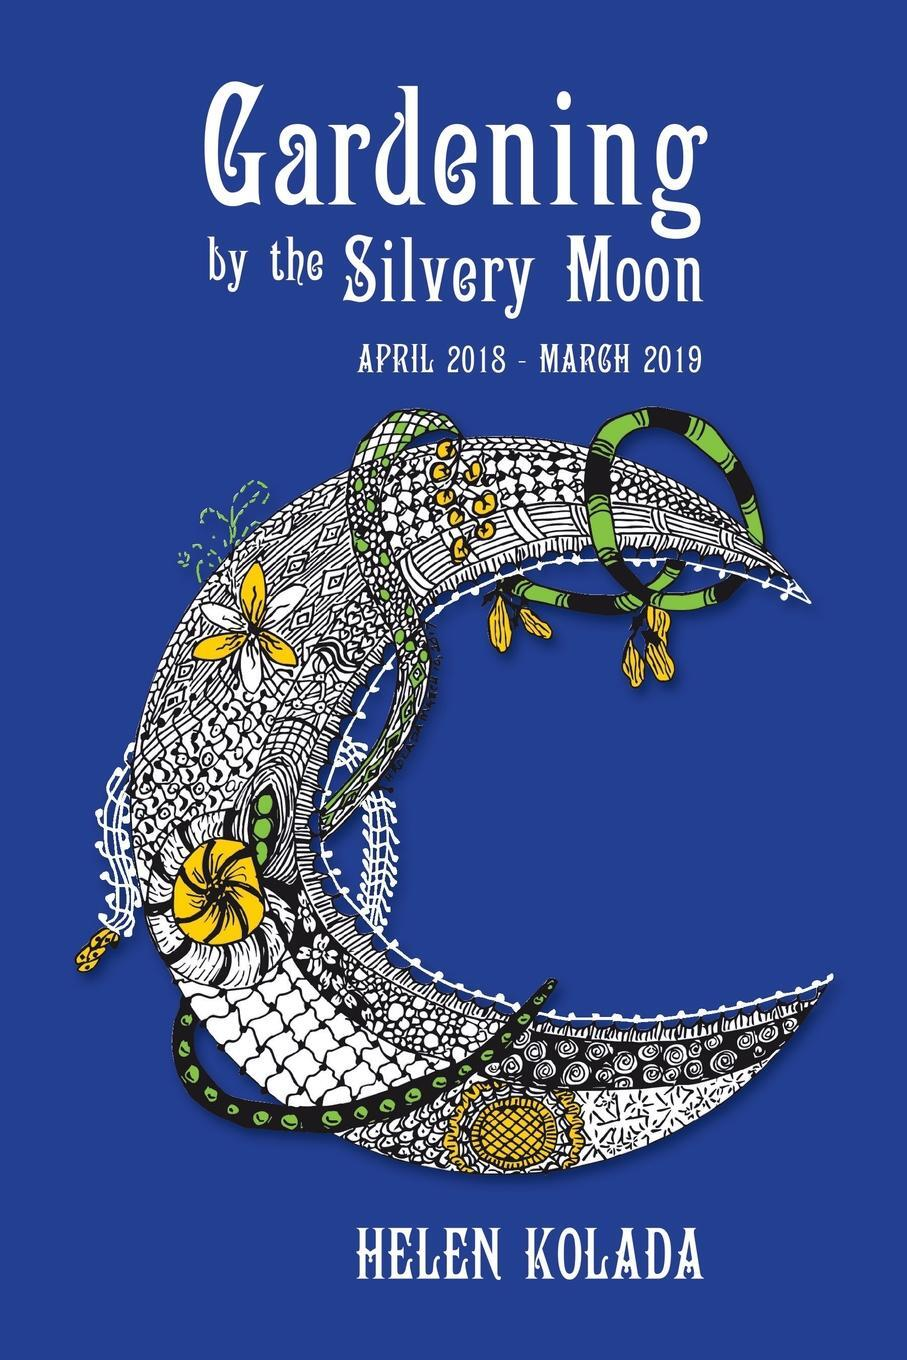 Gardening by the Silvery Moon. April 2018-March 2019